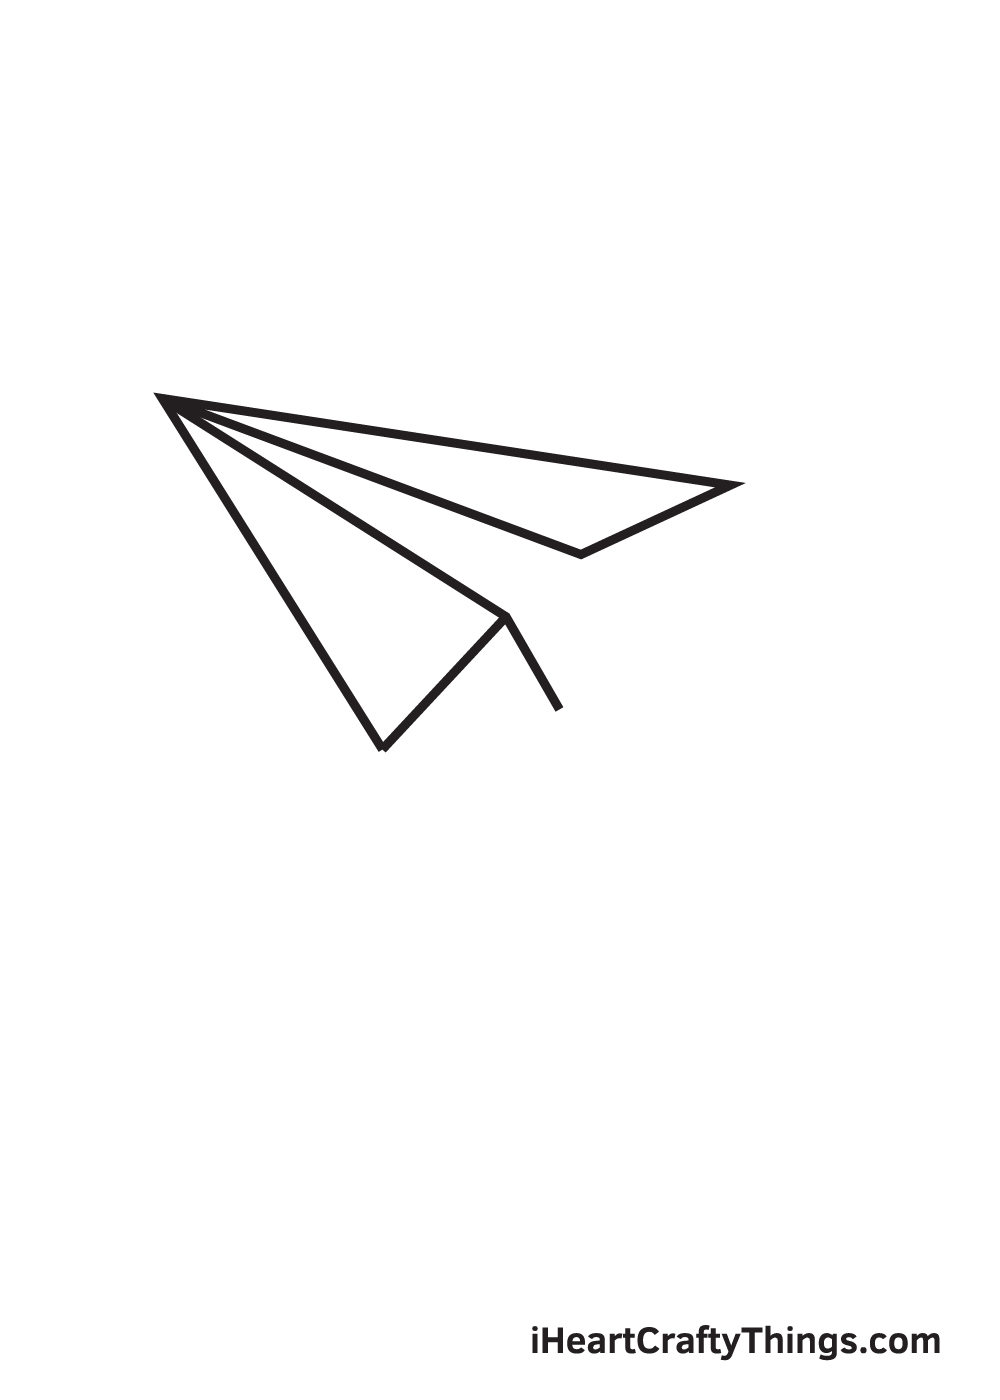 paper airplane drawing step 7